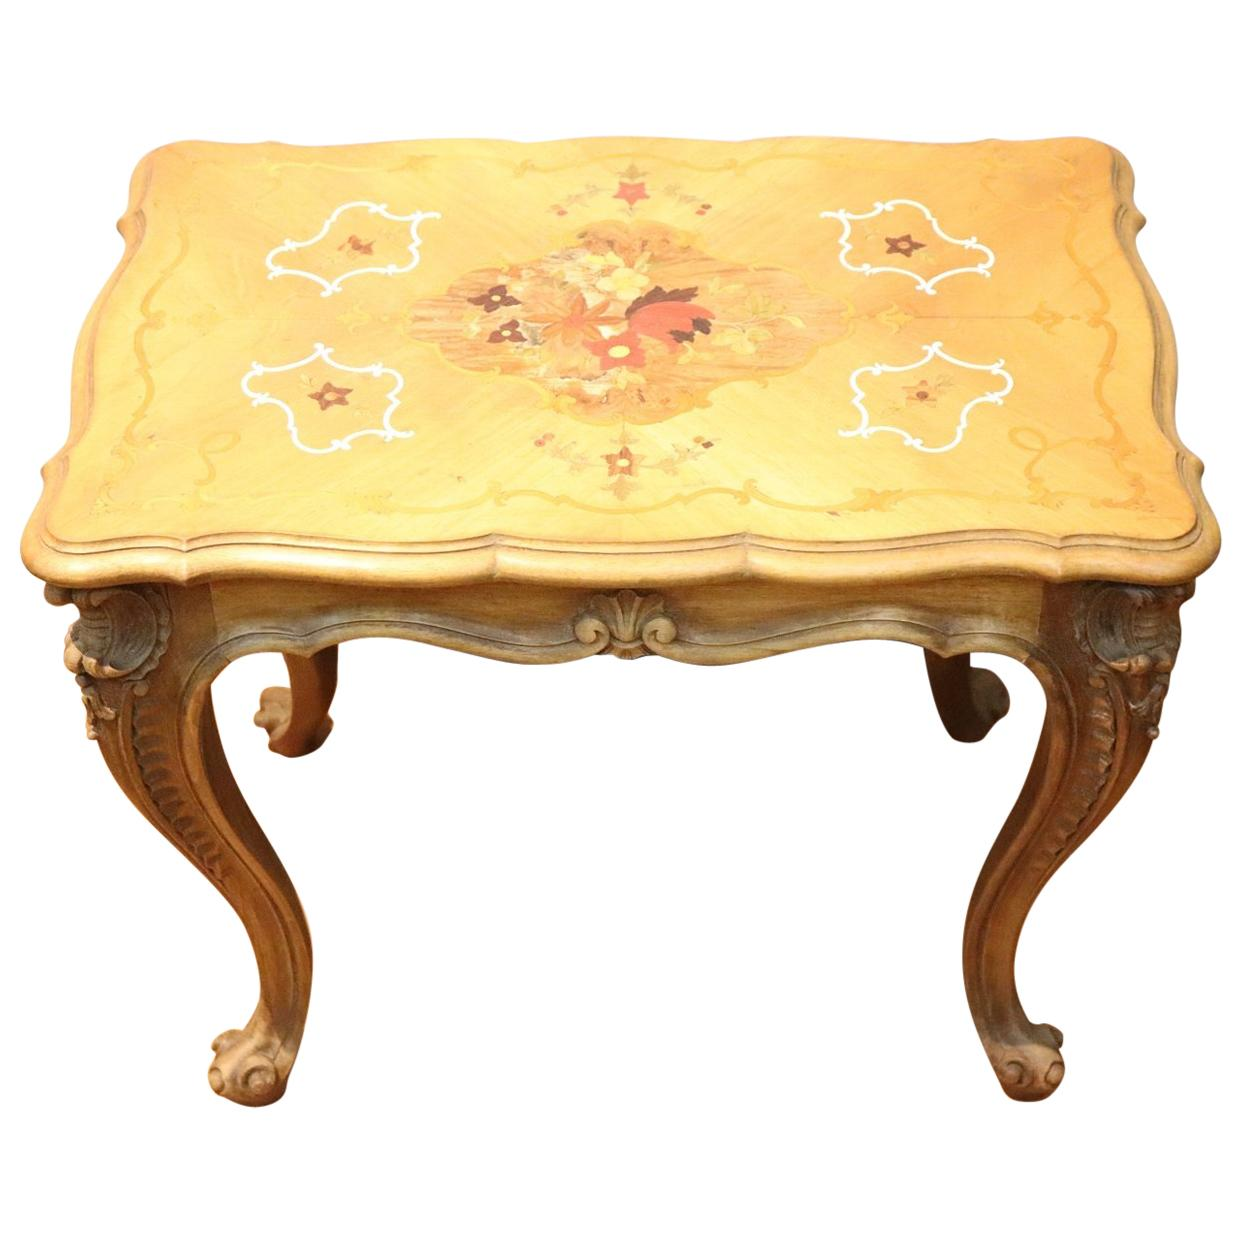 20th Century Louis XV Style Inlaid Wood Side Table or Sofa Table